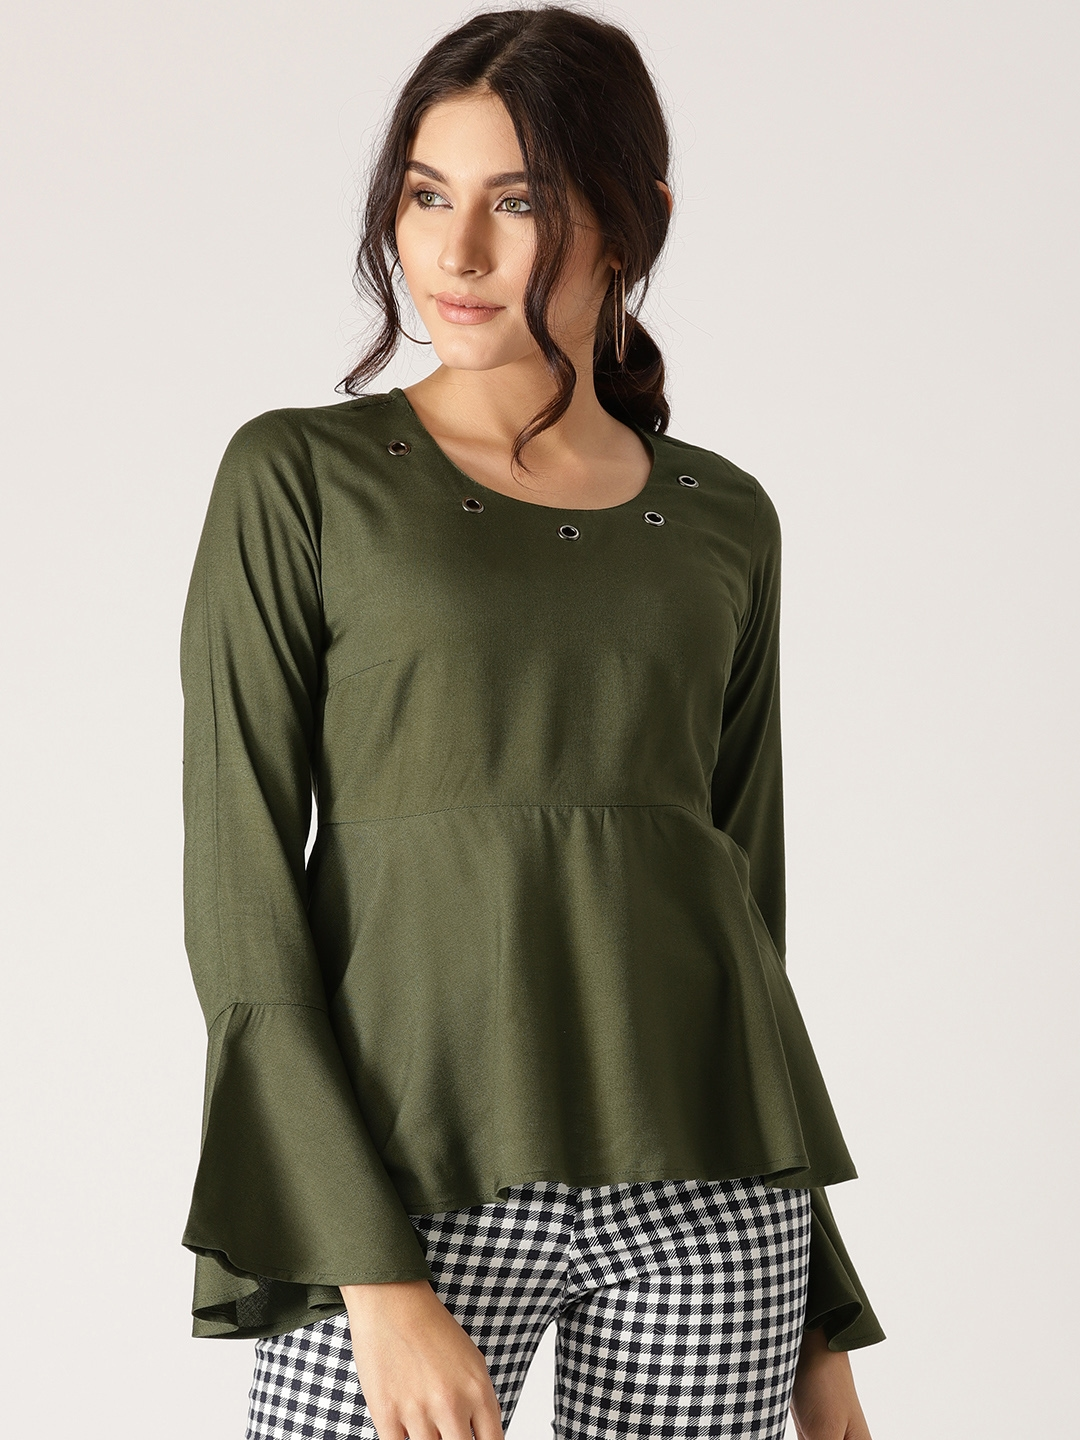 0e0986f93829 Buy AKS Couture Women Olive Green Solid Peplum Top - Tops for Women ...